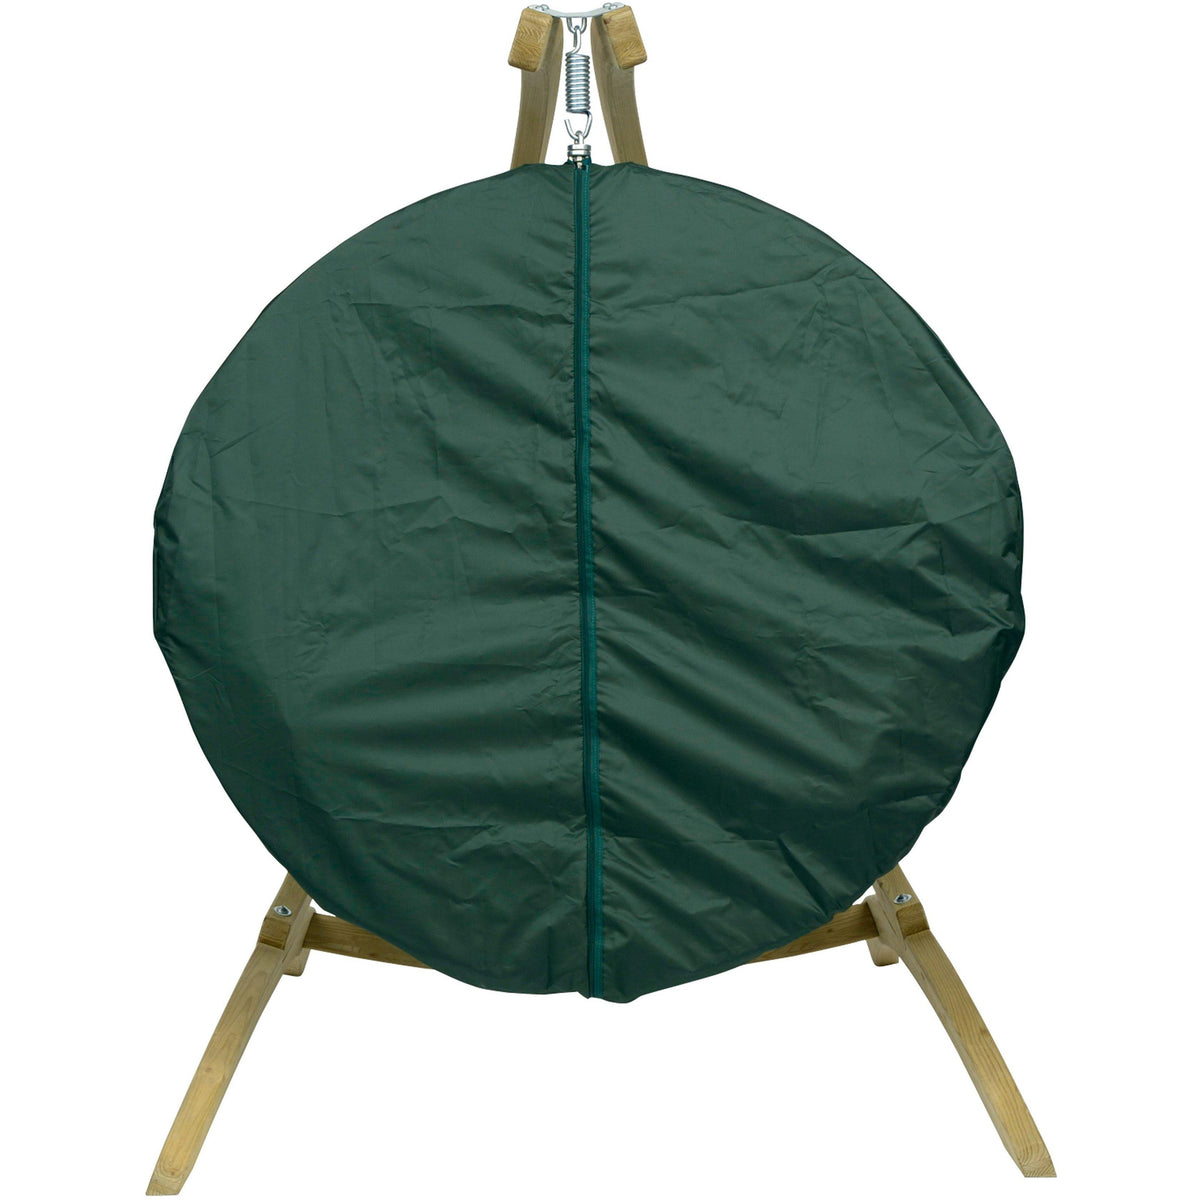 Globo Chair Outdoor Weather Cover, from Byer of Maine